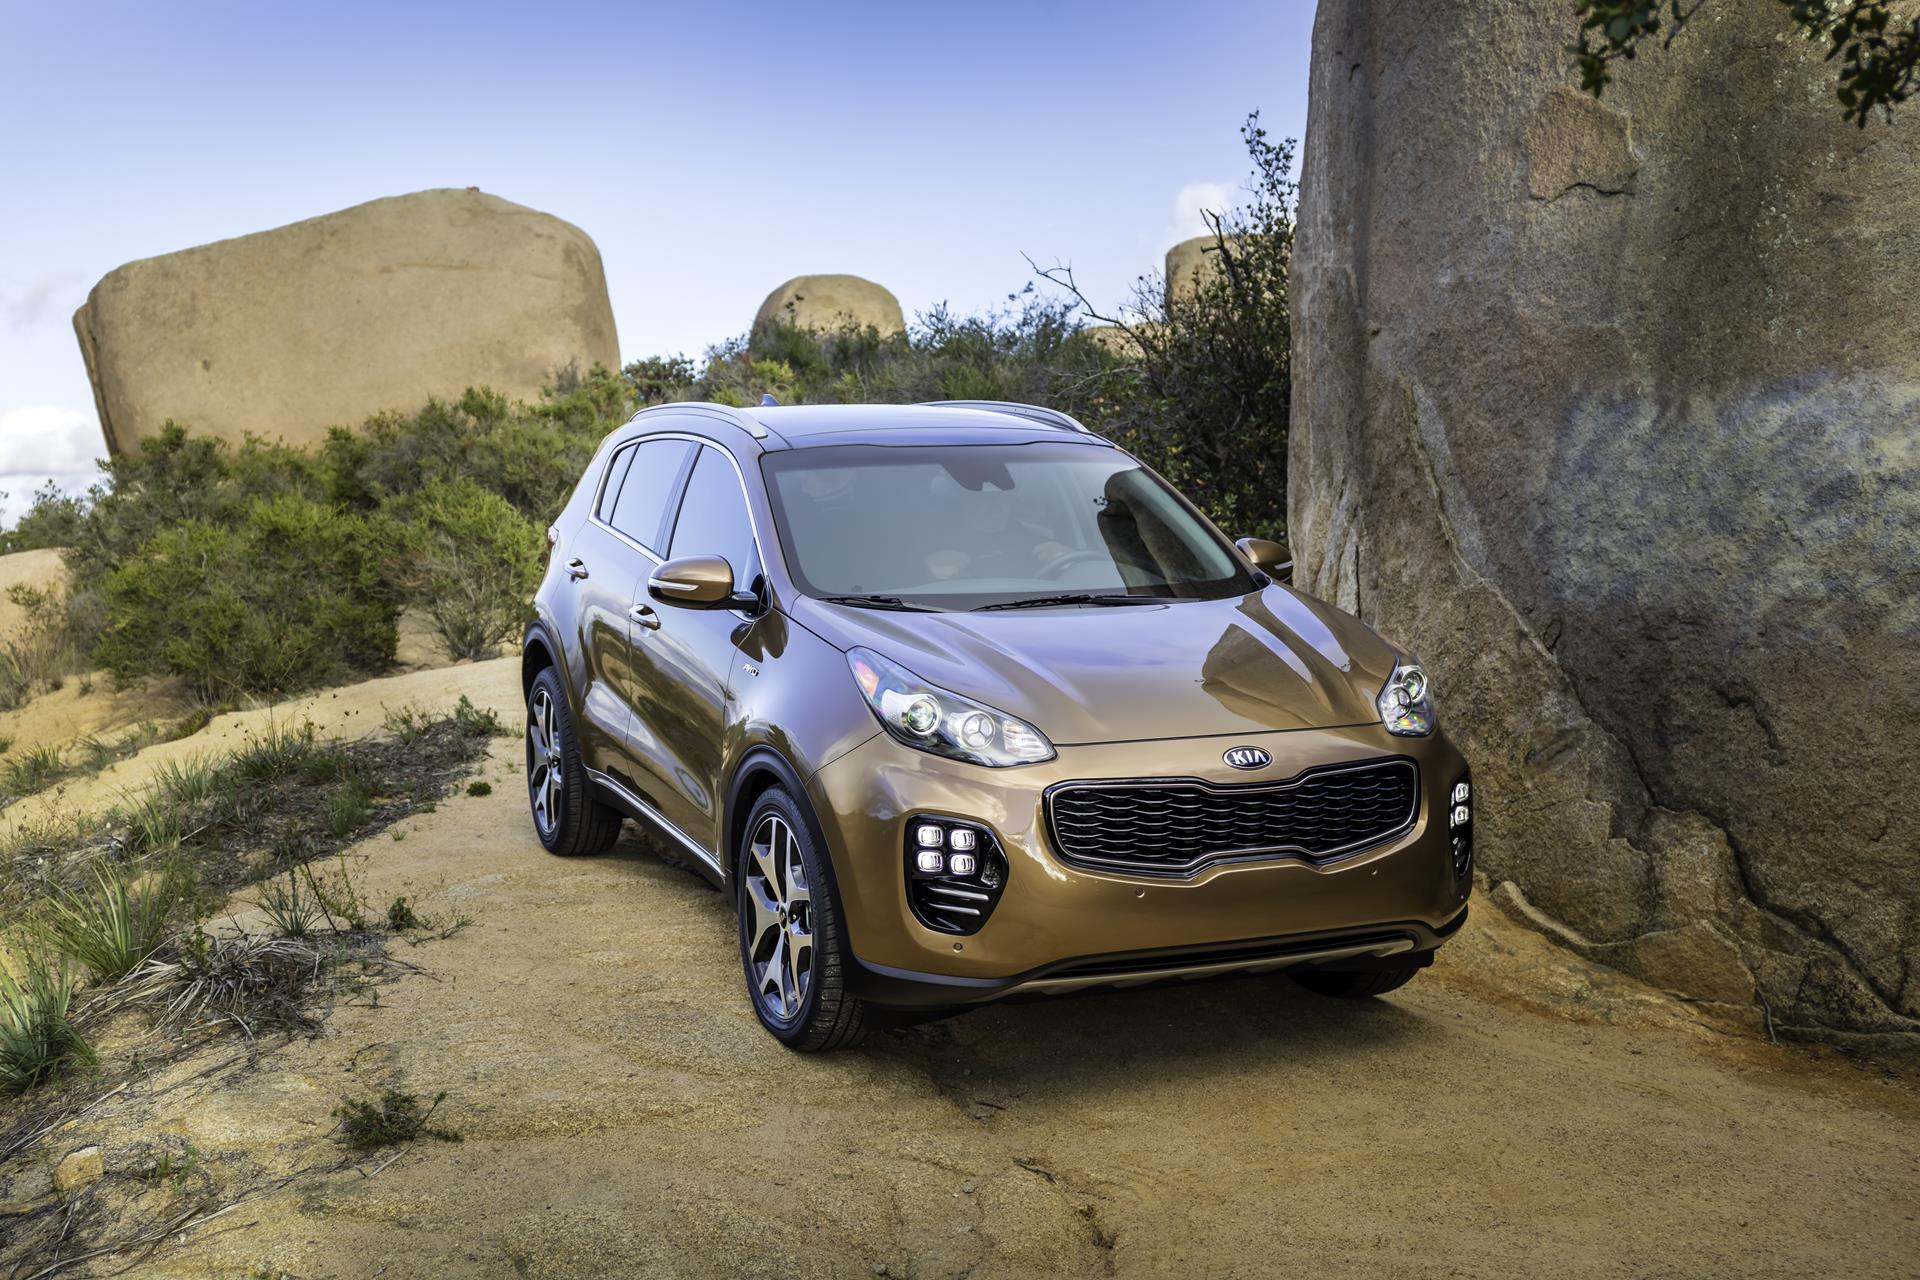 2017 Kia Sportage SUV_Image 01 2017 kia sportage technical specifications and data engine 2017 Kia Sportage Oil Change at crackthecode.co